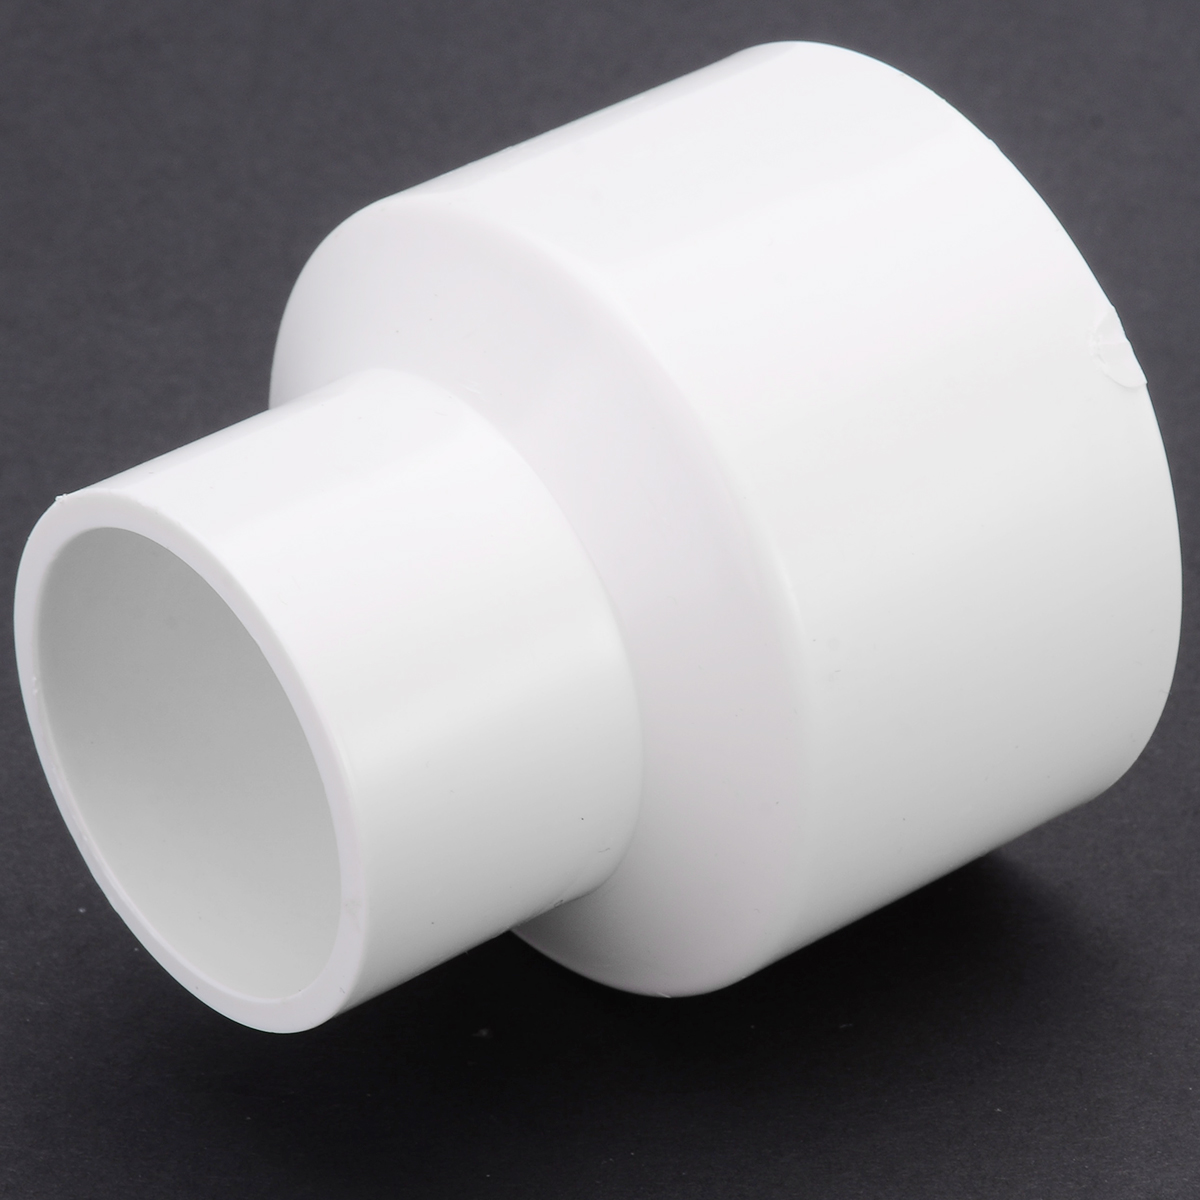 1Pcs 50mm To 32mm PVC Woodworking Reducer Adaptor Power Tool For Vacuum Cleaner For Cyclone Dust Collector Woodworking